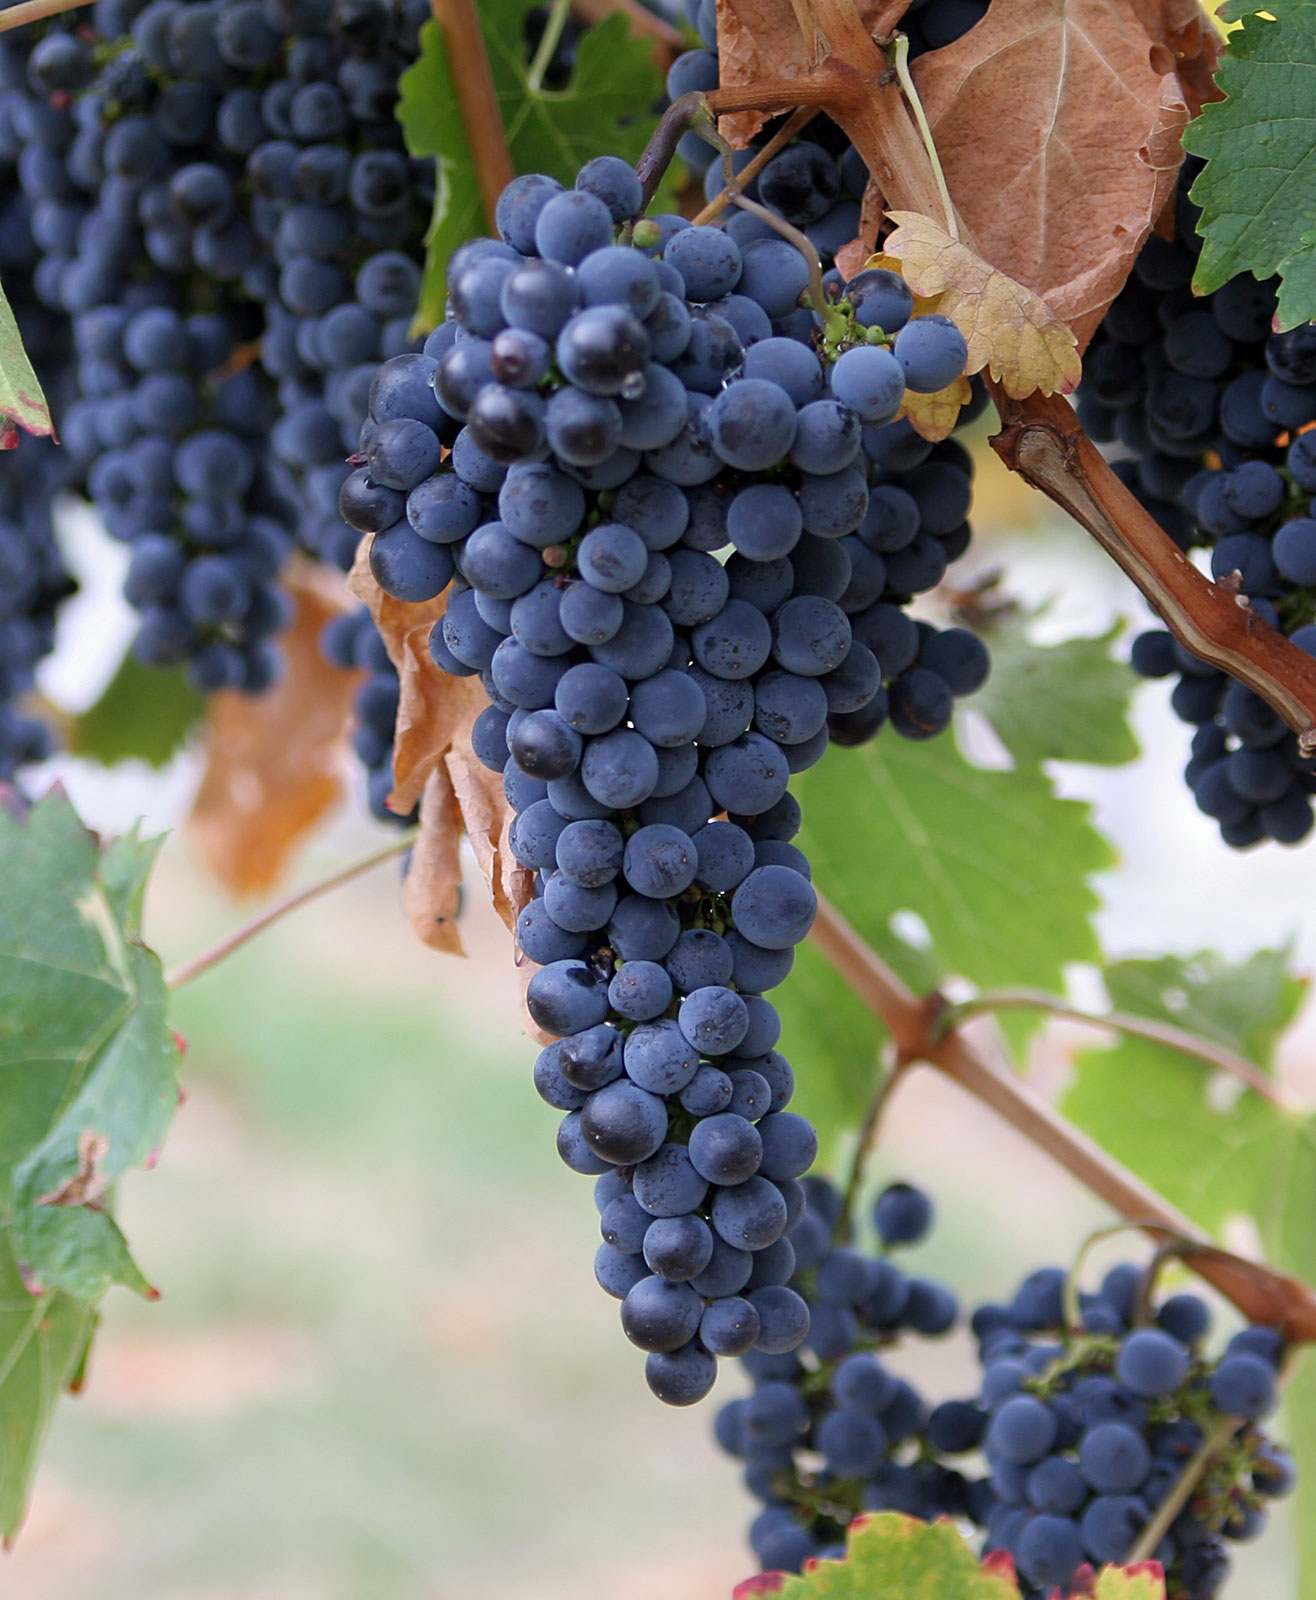 Commercial building grape concentrates, other products and waste from the wine industry